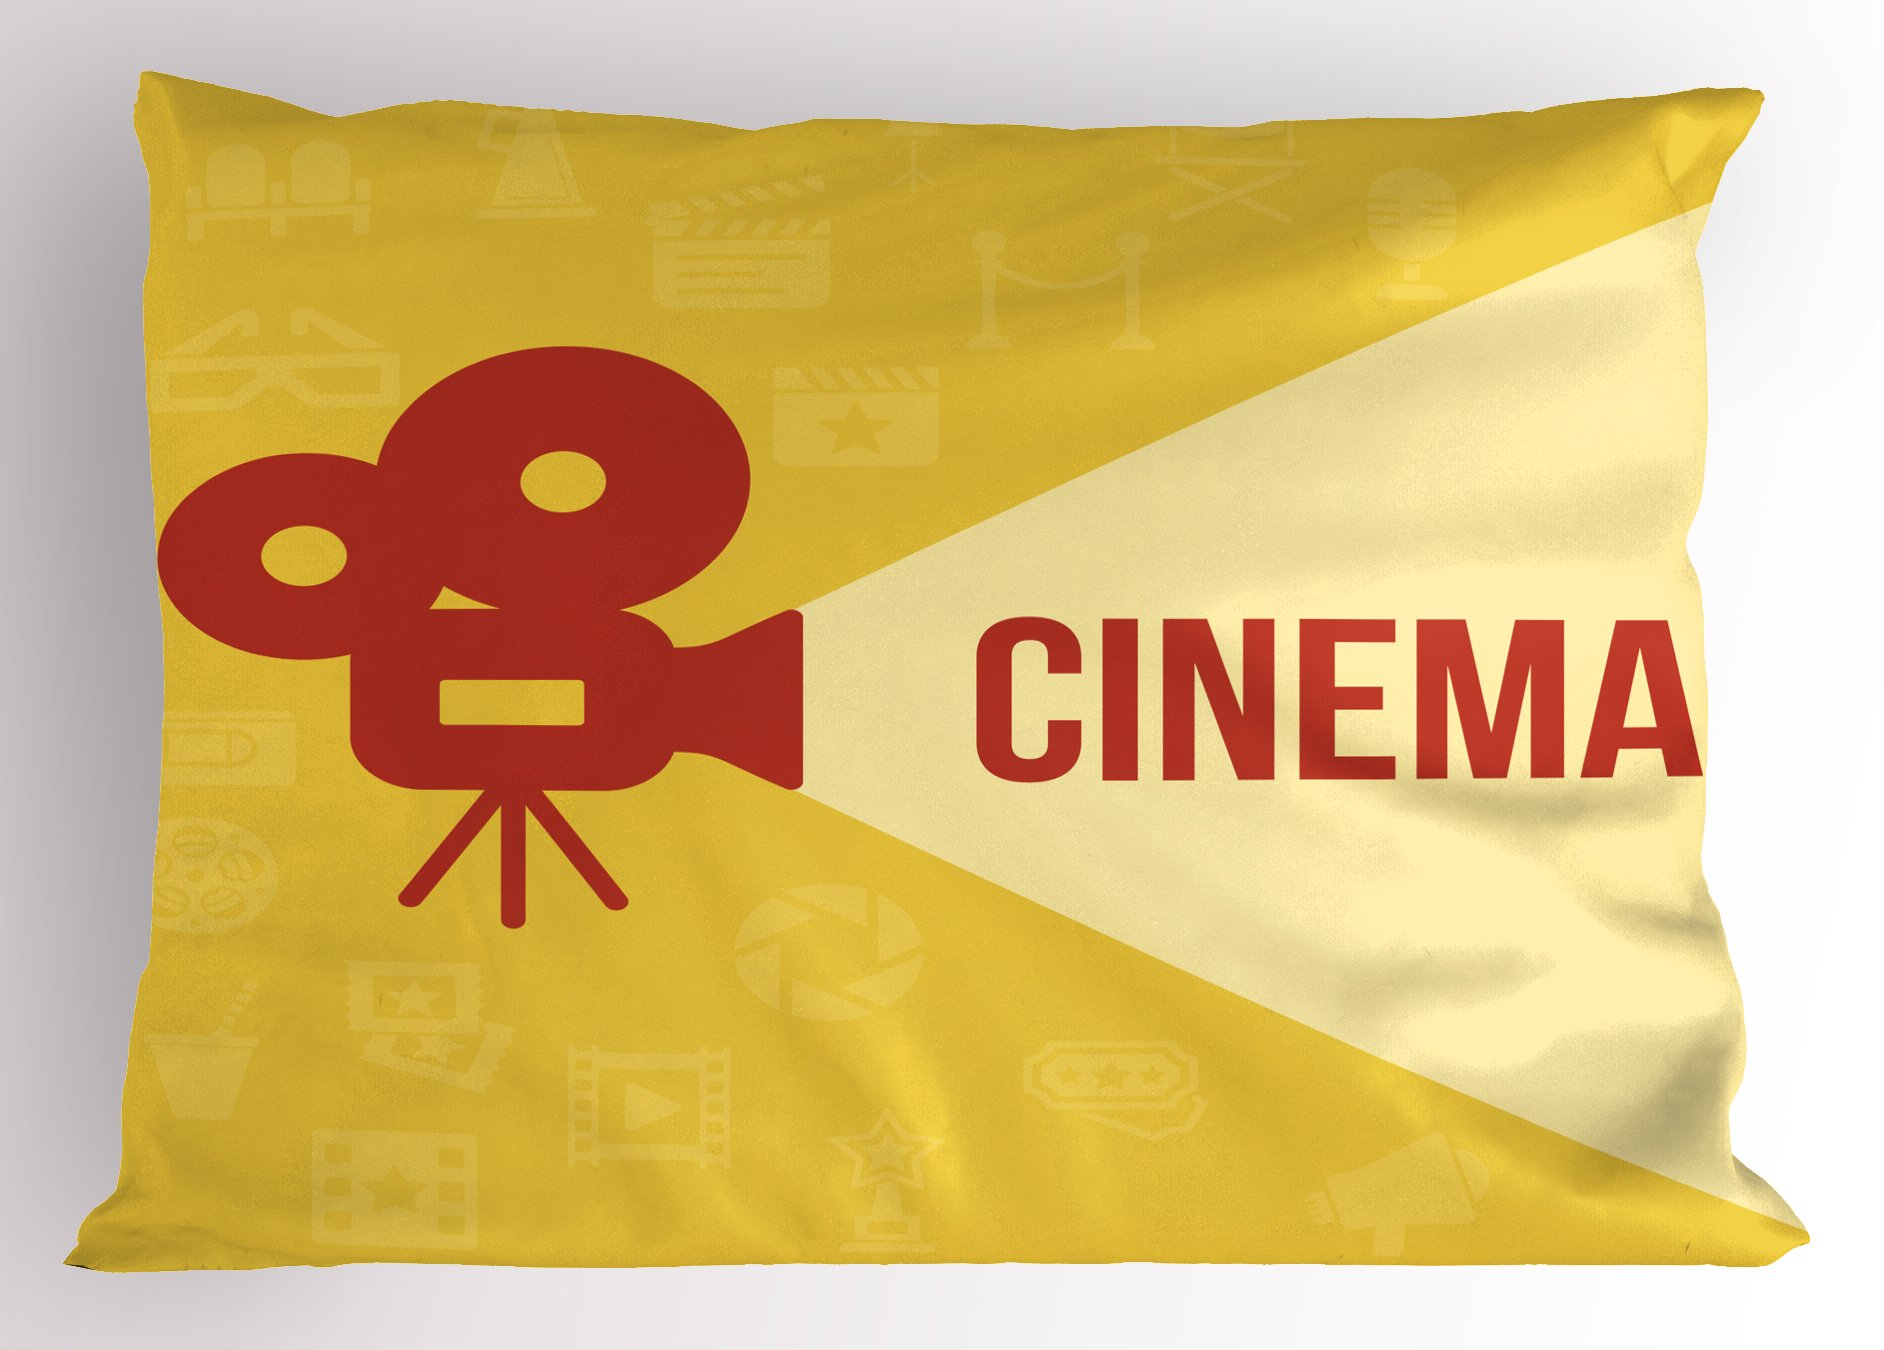 Ambesonne Movie Theater Pillow Sham, Projector Silhouette with Cinema Quote Movie Symbols Background, Decorative Standard Queen Size Printed Pillowcase, 30 X 20 Inches, Dark Coral Beige Yellow